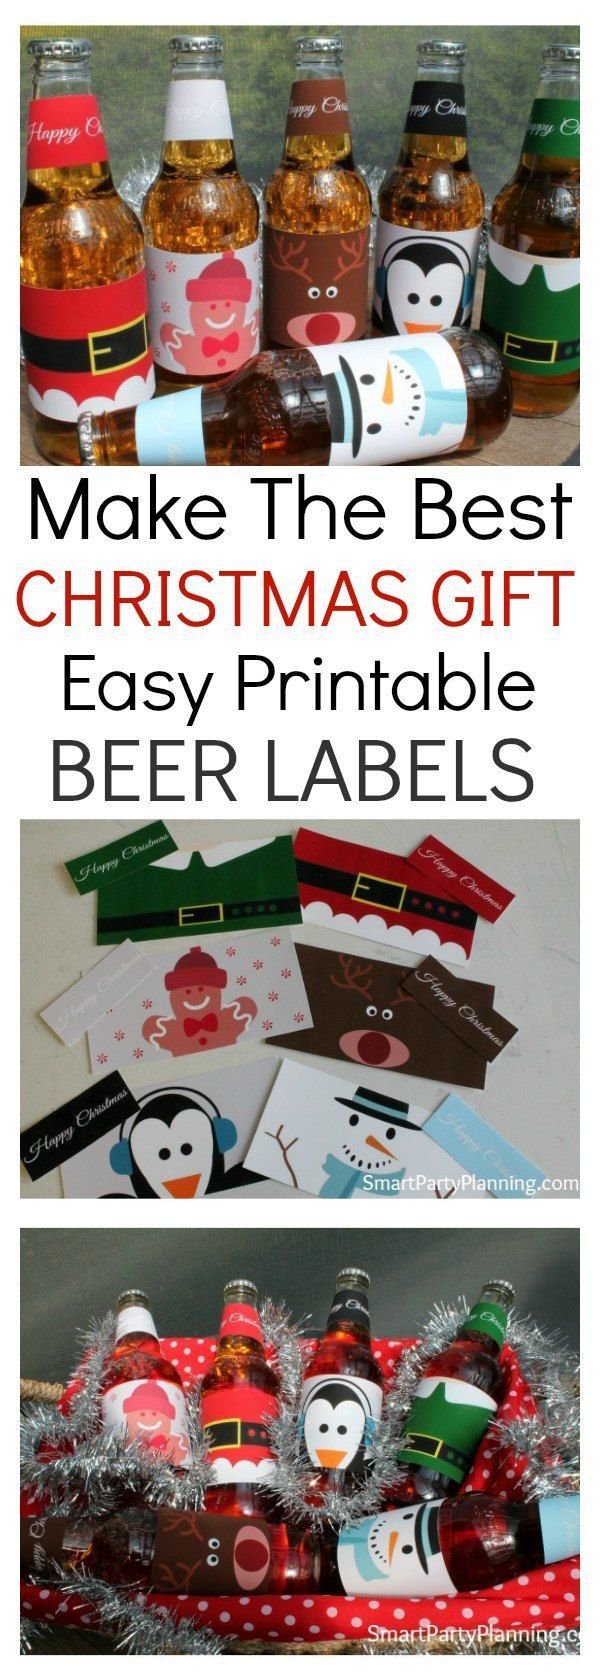 Printable beer labels are the perfect gift idea for your man this Christmas. It is quick and easy to prepare and you know it is going to be something he will love. For a cost effective, easy, different gift idea this definitely ticks all the box's. Alternatively, they would look fantastic at a Christmas party or to enjoy a cool beverage on Christmas day. Either way, these cute Christmas beer labels will be sure to be a hit. #Christmas #Beer #Printable #Mensgift